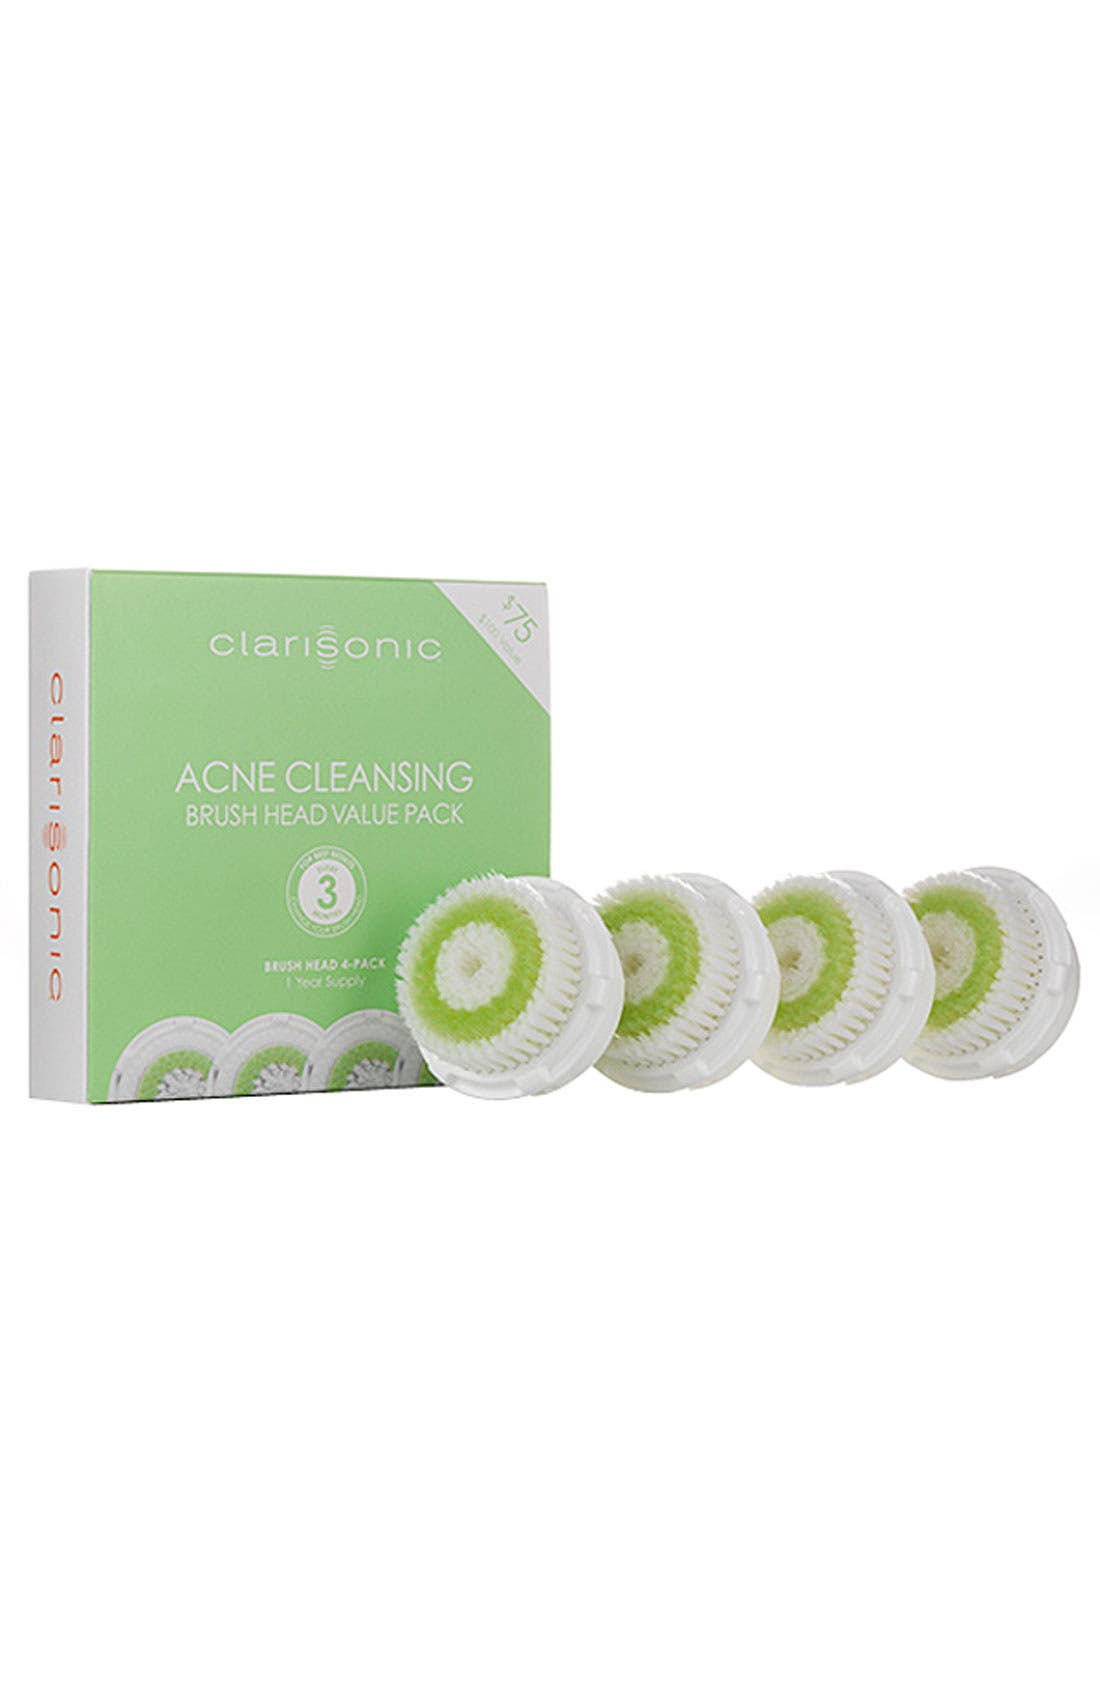 Acne Cleansing Replacement Brush Heads for Acne-Prone Skin,                             Alternate thumbnail 2, color,                             000